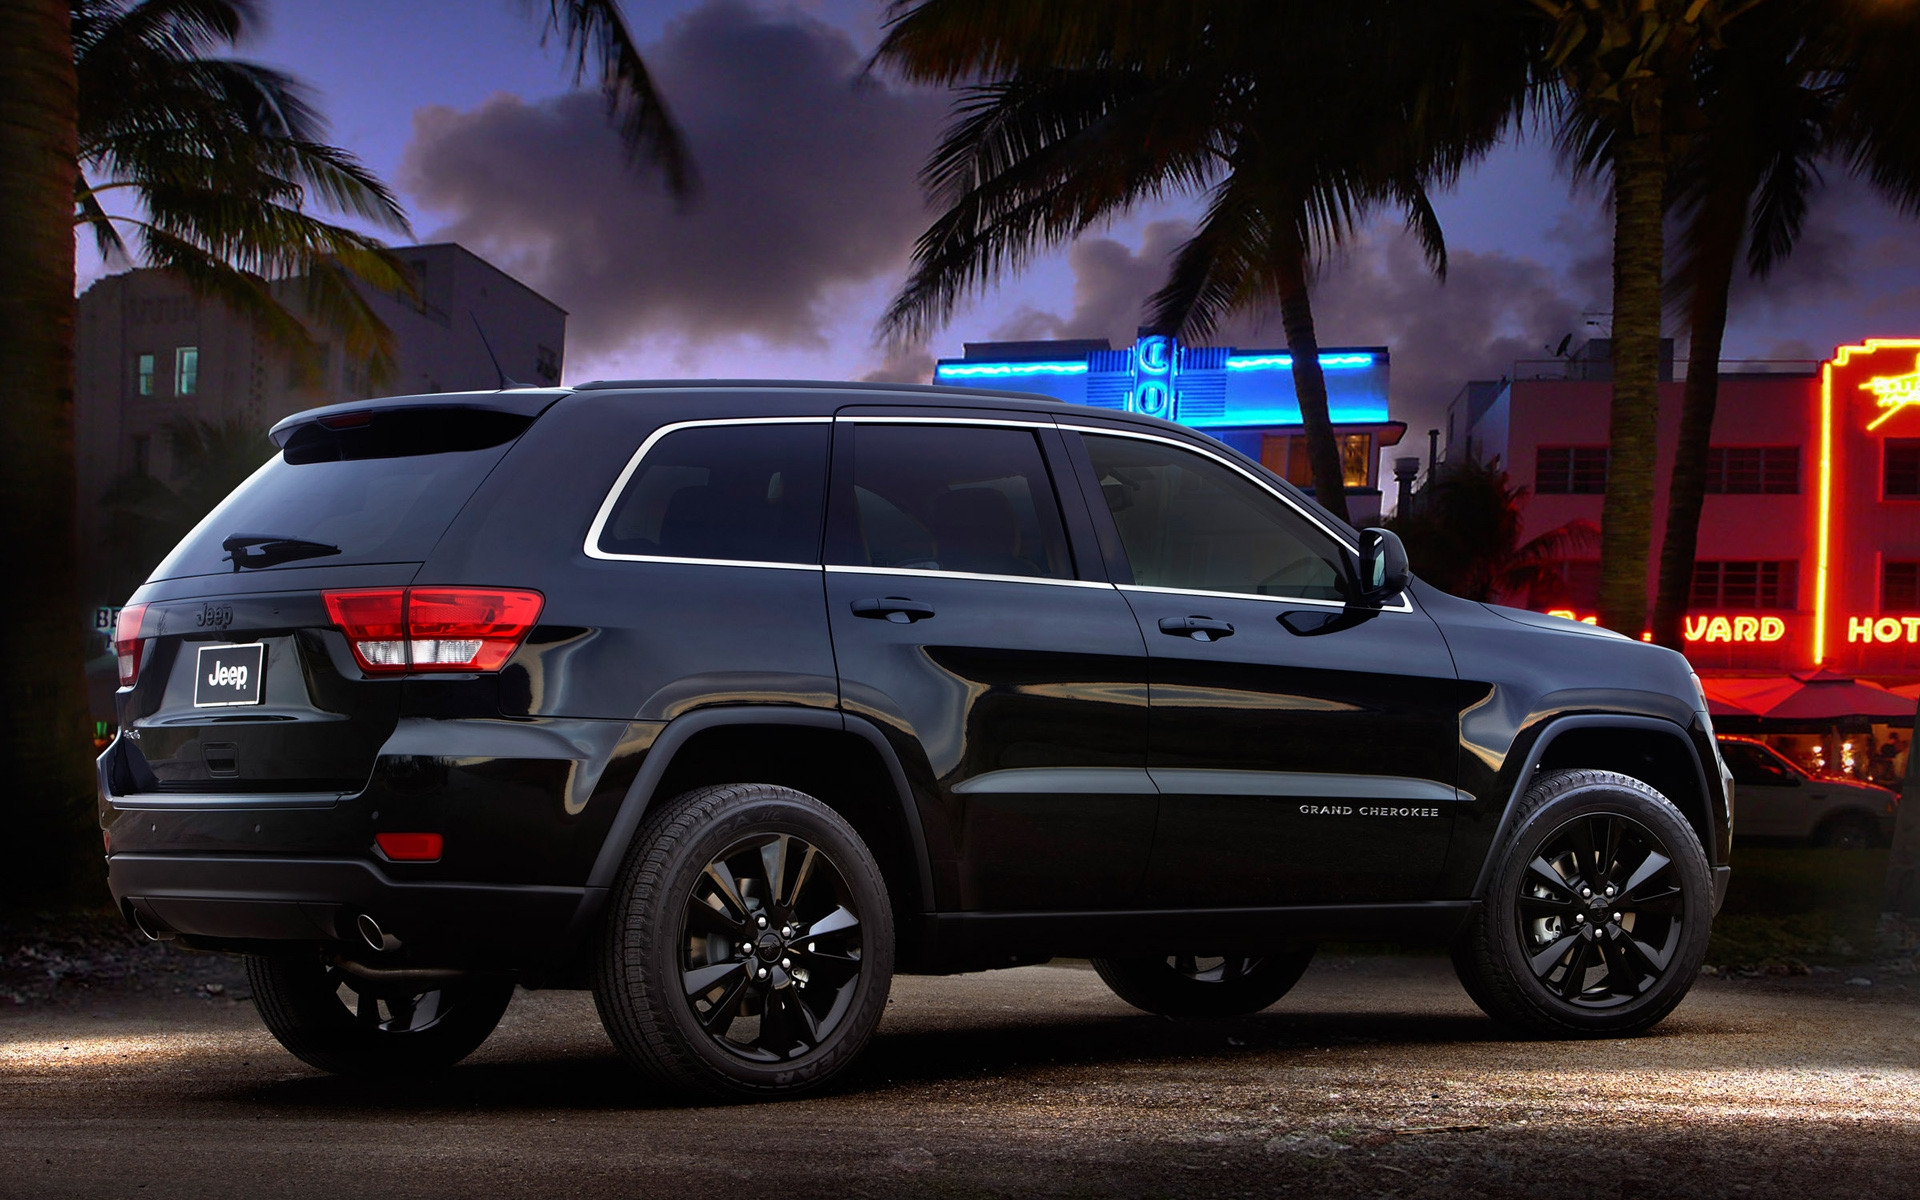 Jeep Grand Cherokee Rear Concept for 1920 x 1200 widescreen resolution